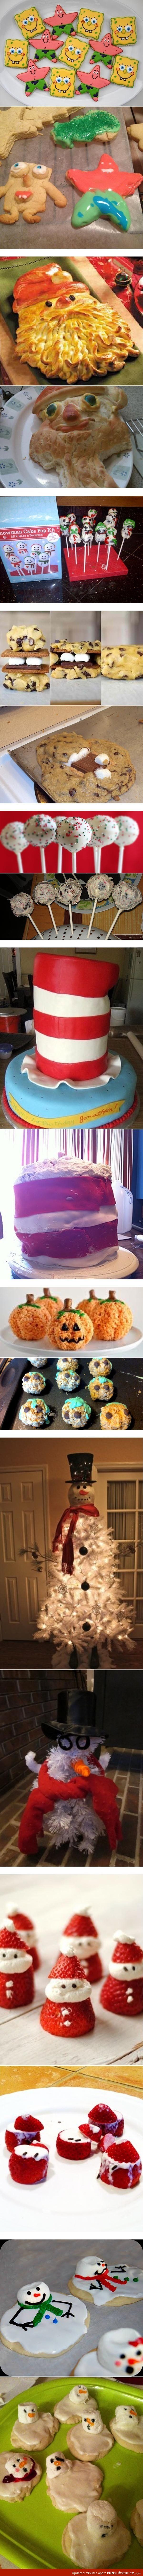 Damn it Pinterest. Stop making these stupid crafts seem so appealing. No one can do them!!